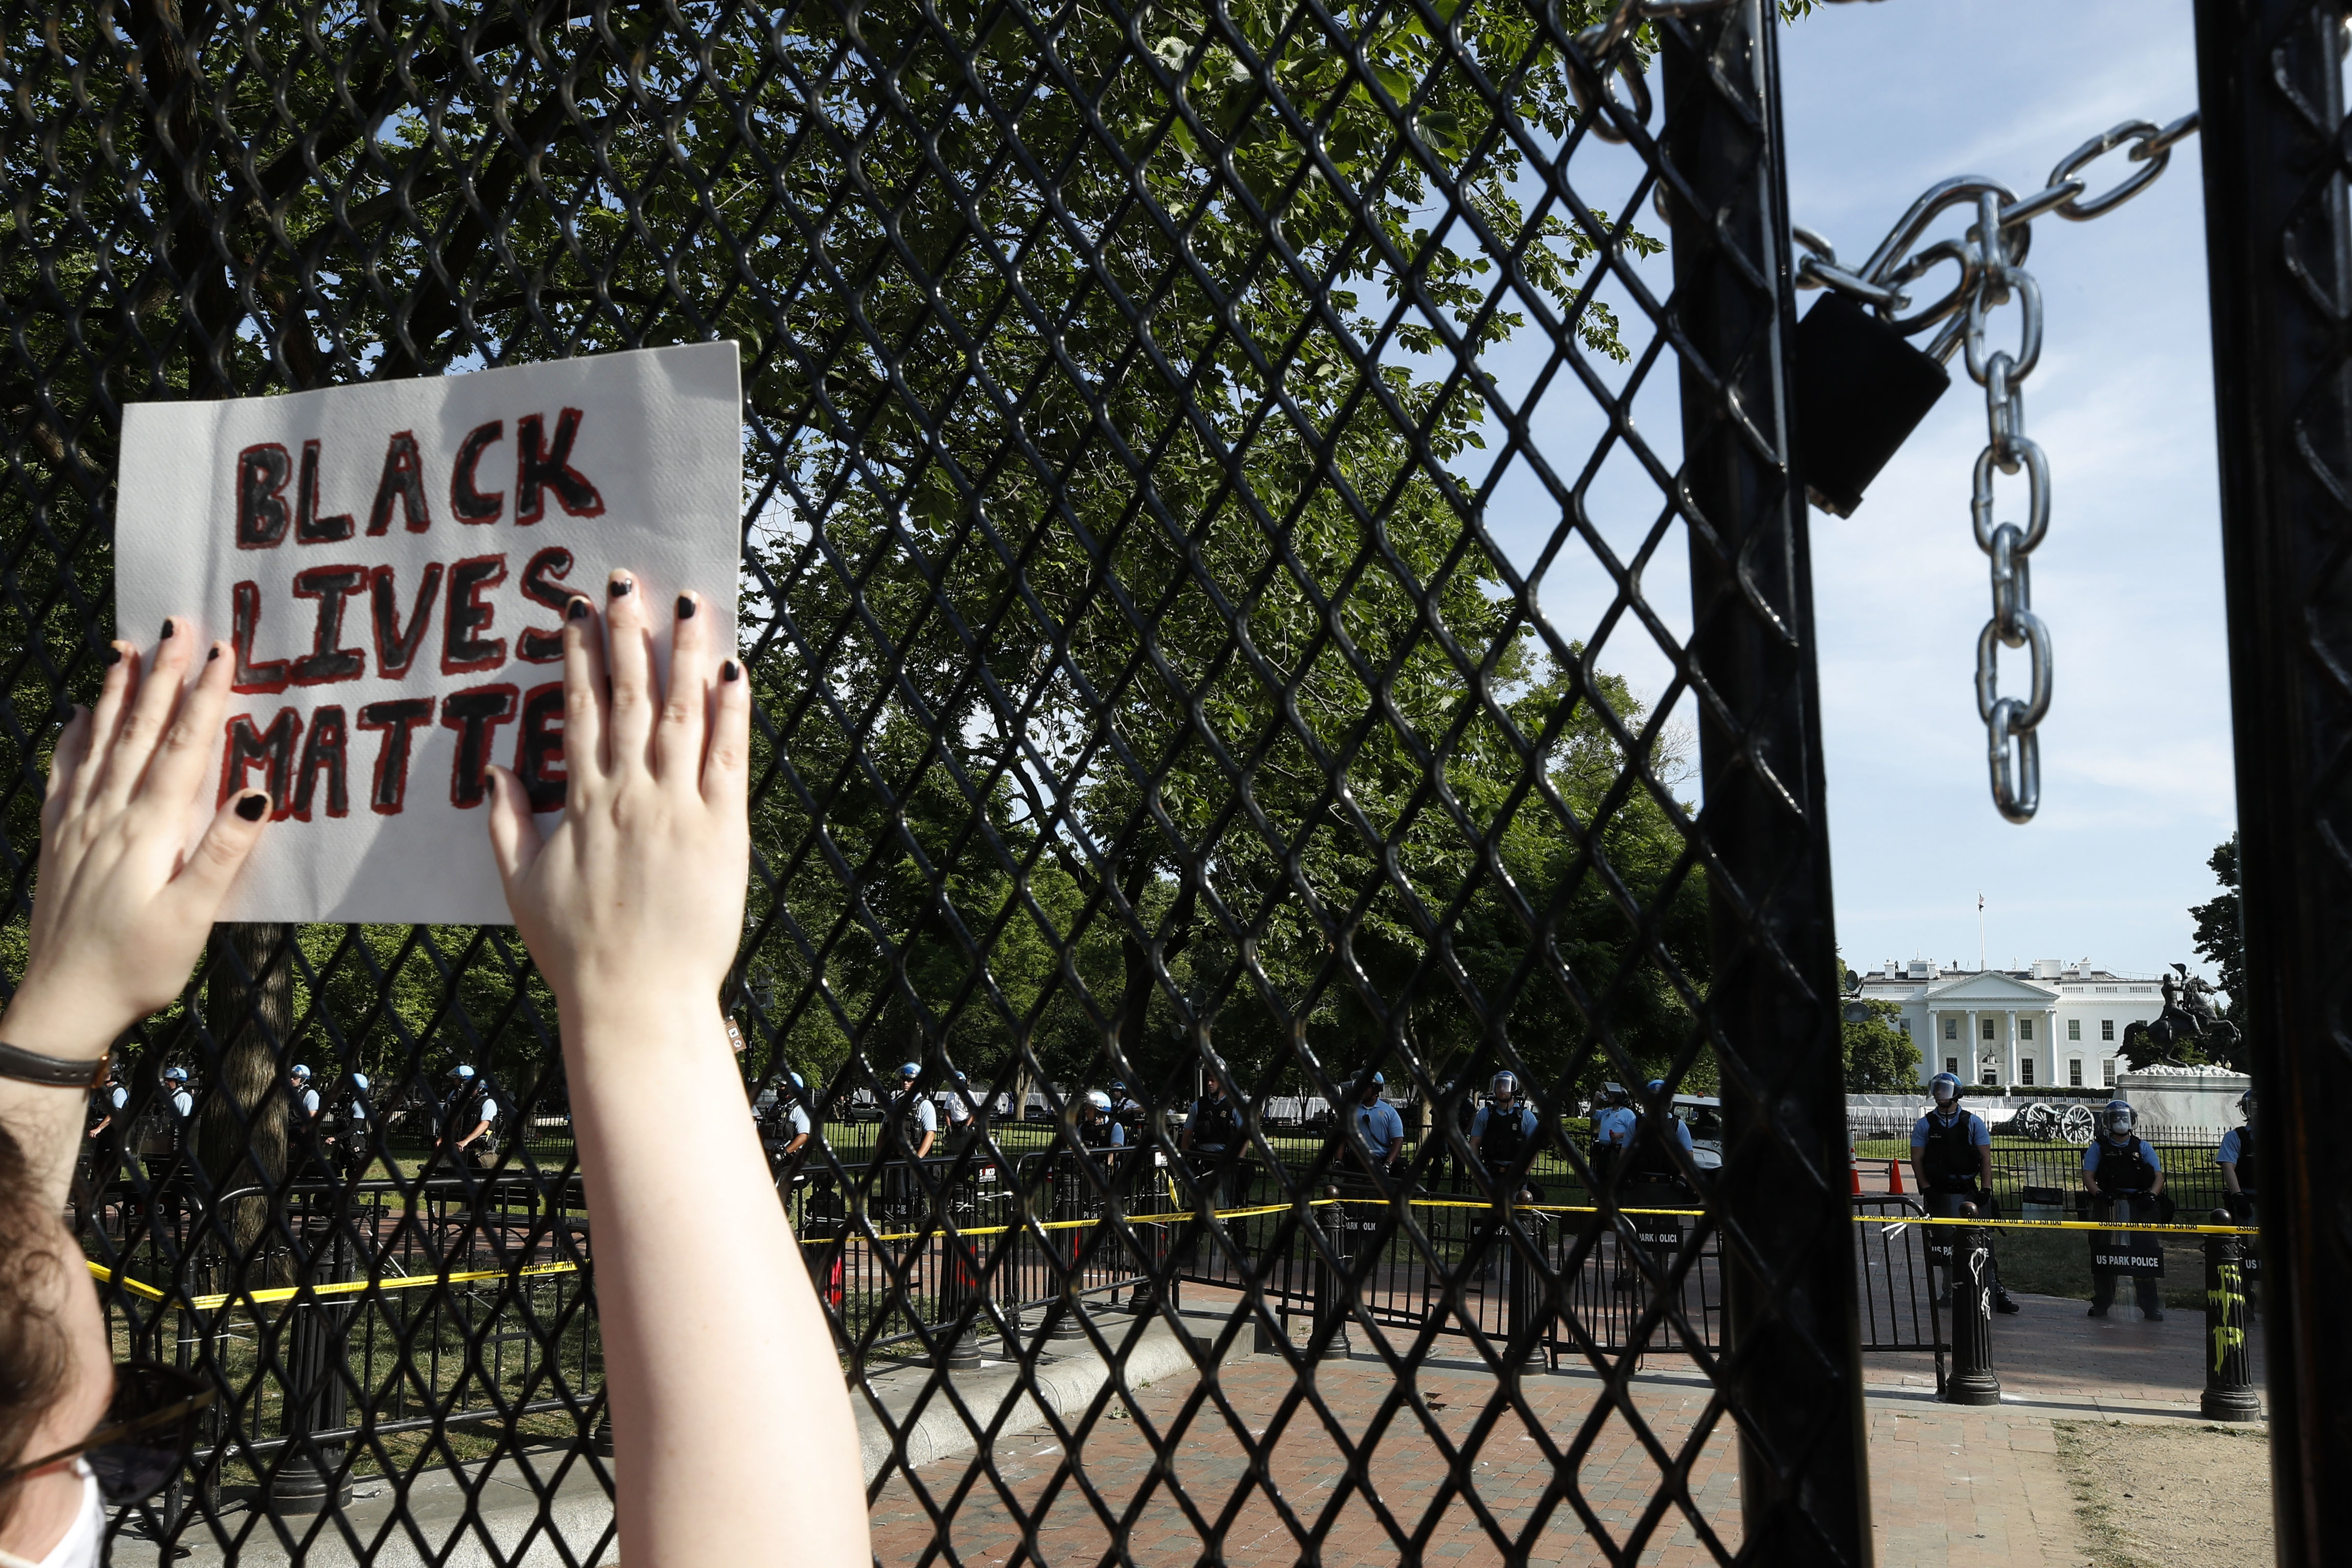 A person protests behind a fence near the White House on June 2.